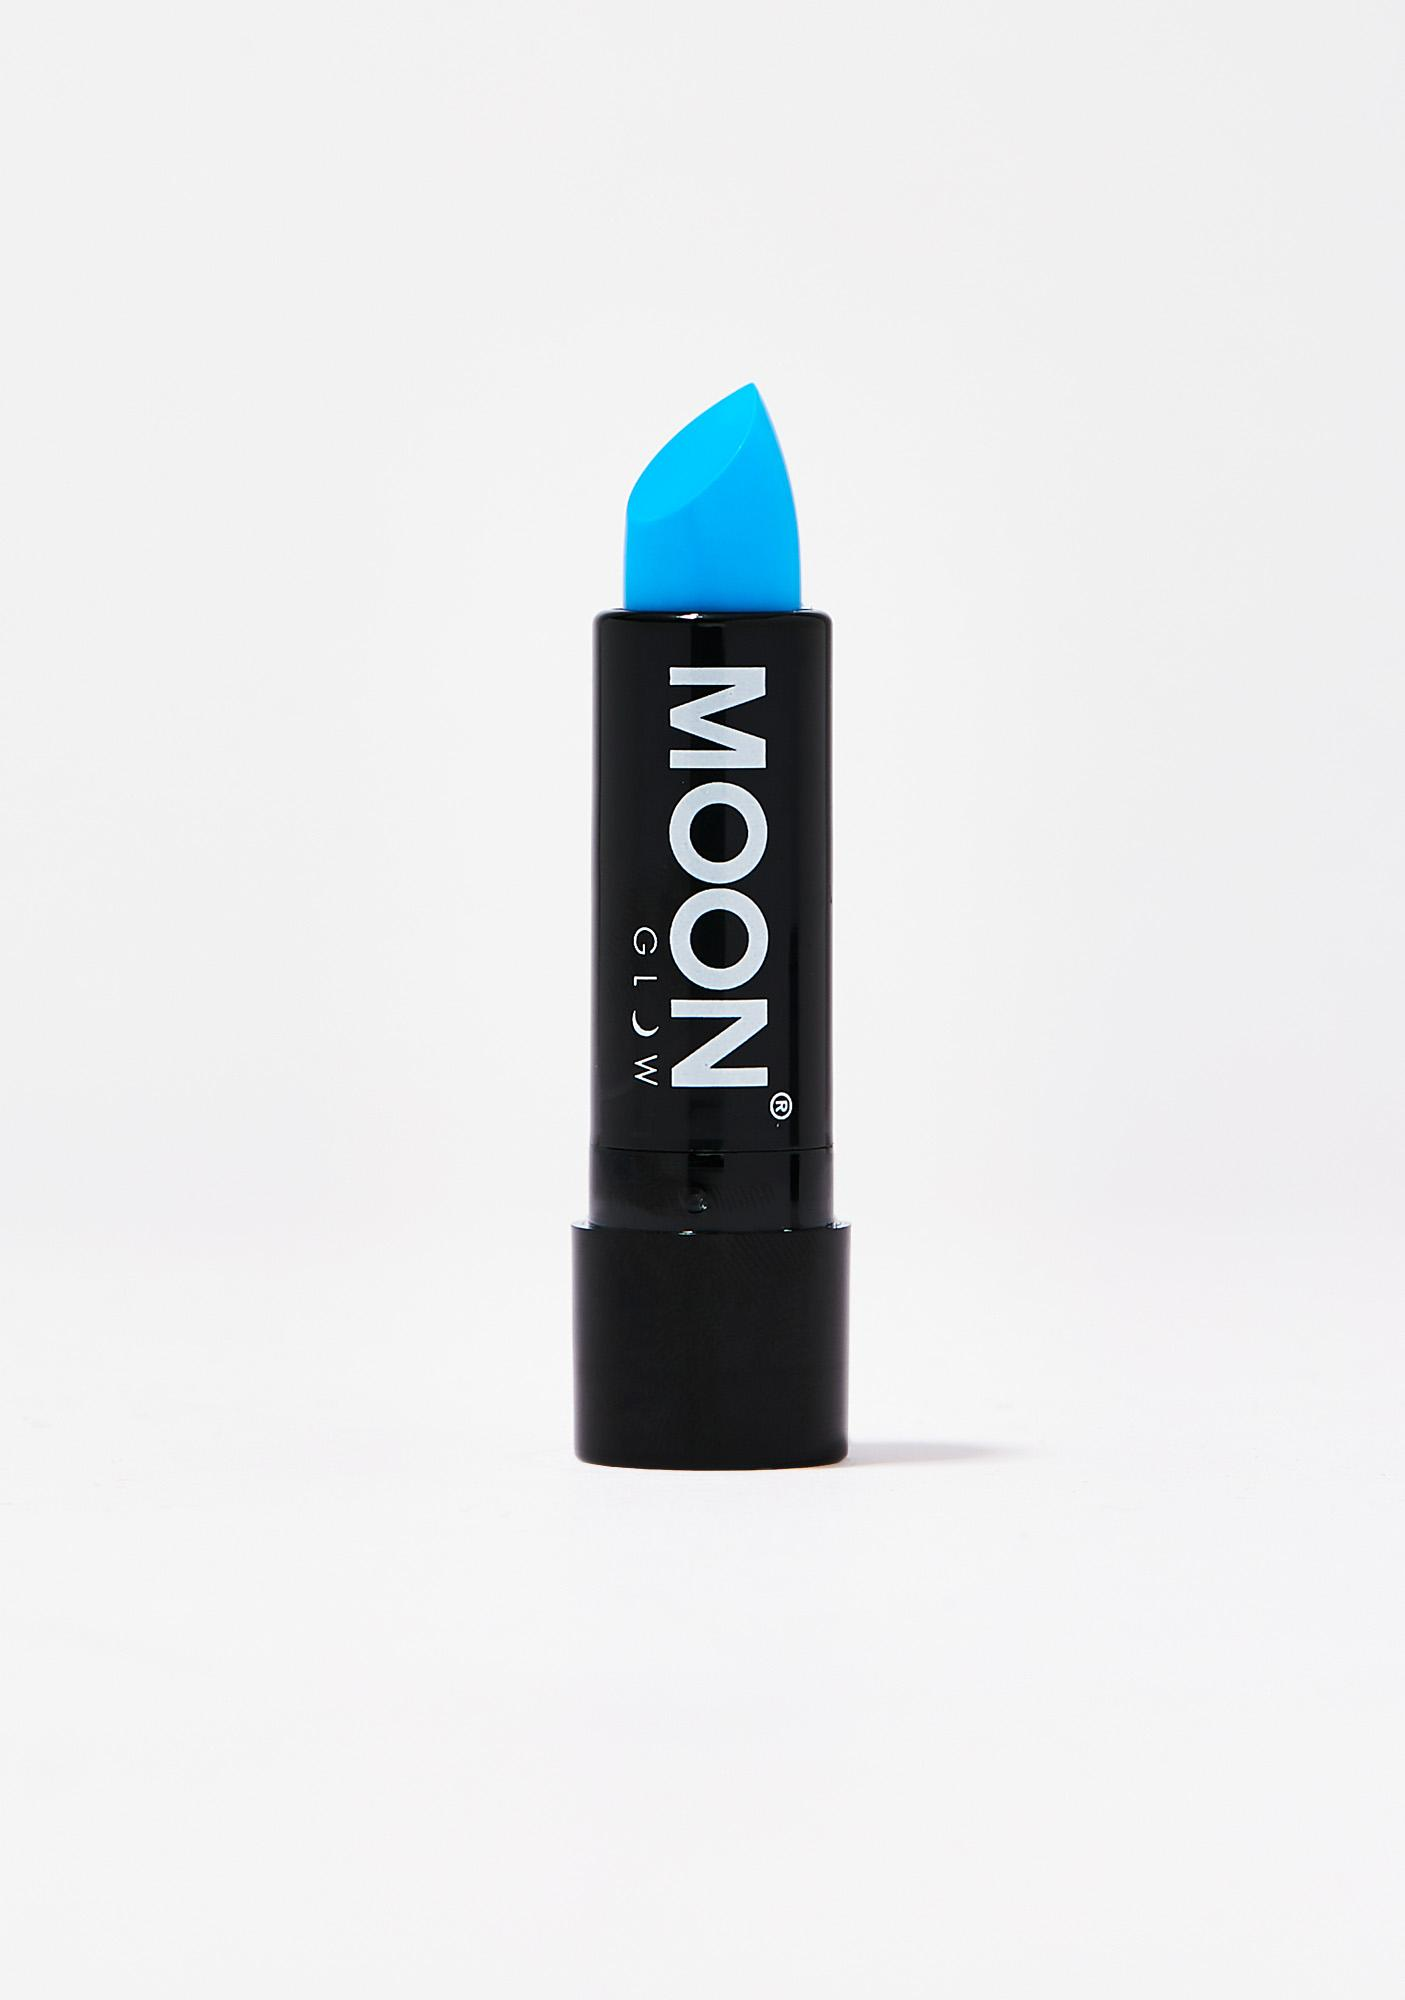 Moon Creations Neon Pastel Blue UV Lipstick